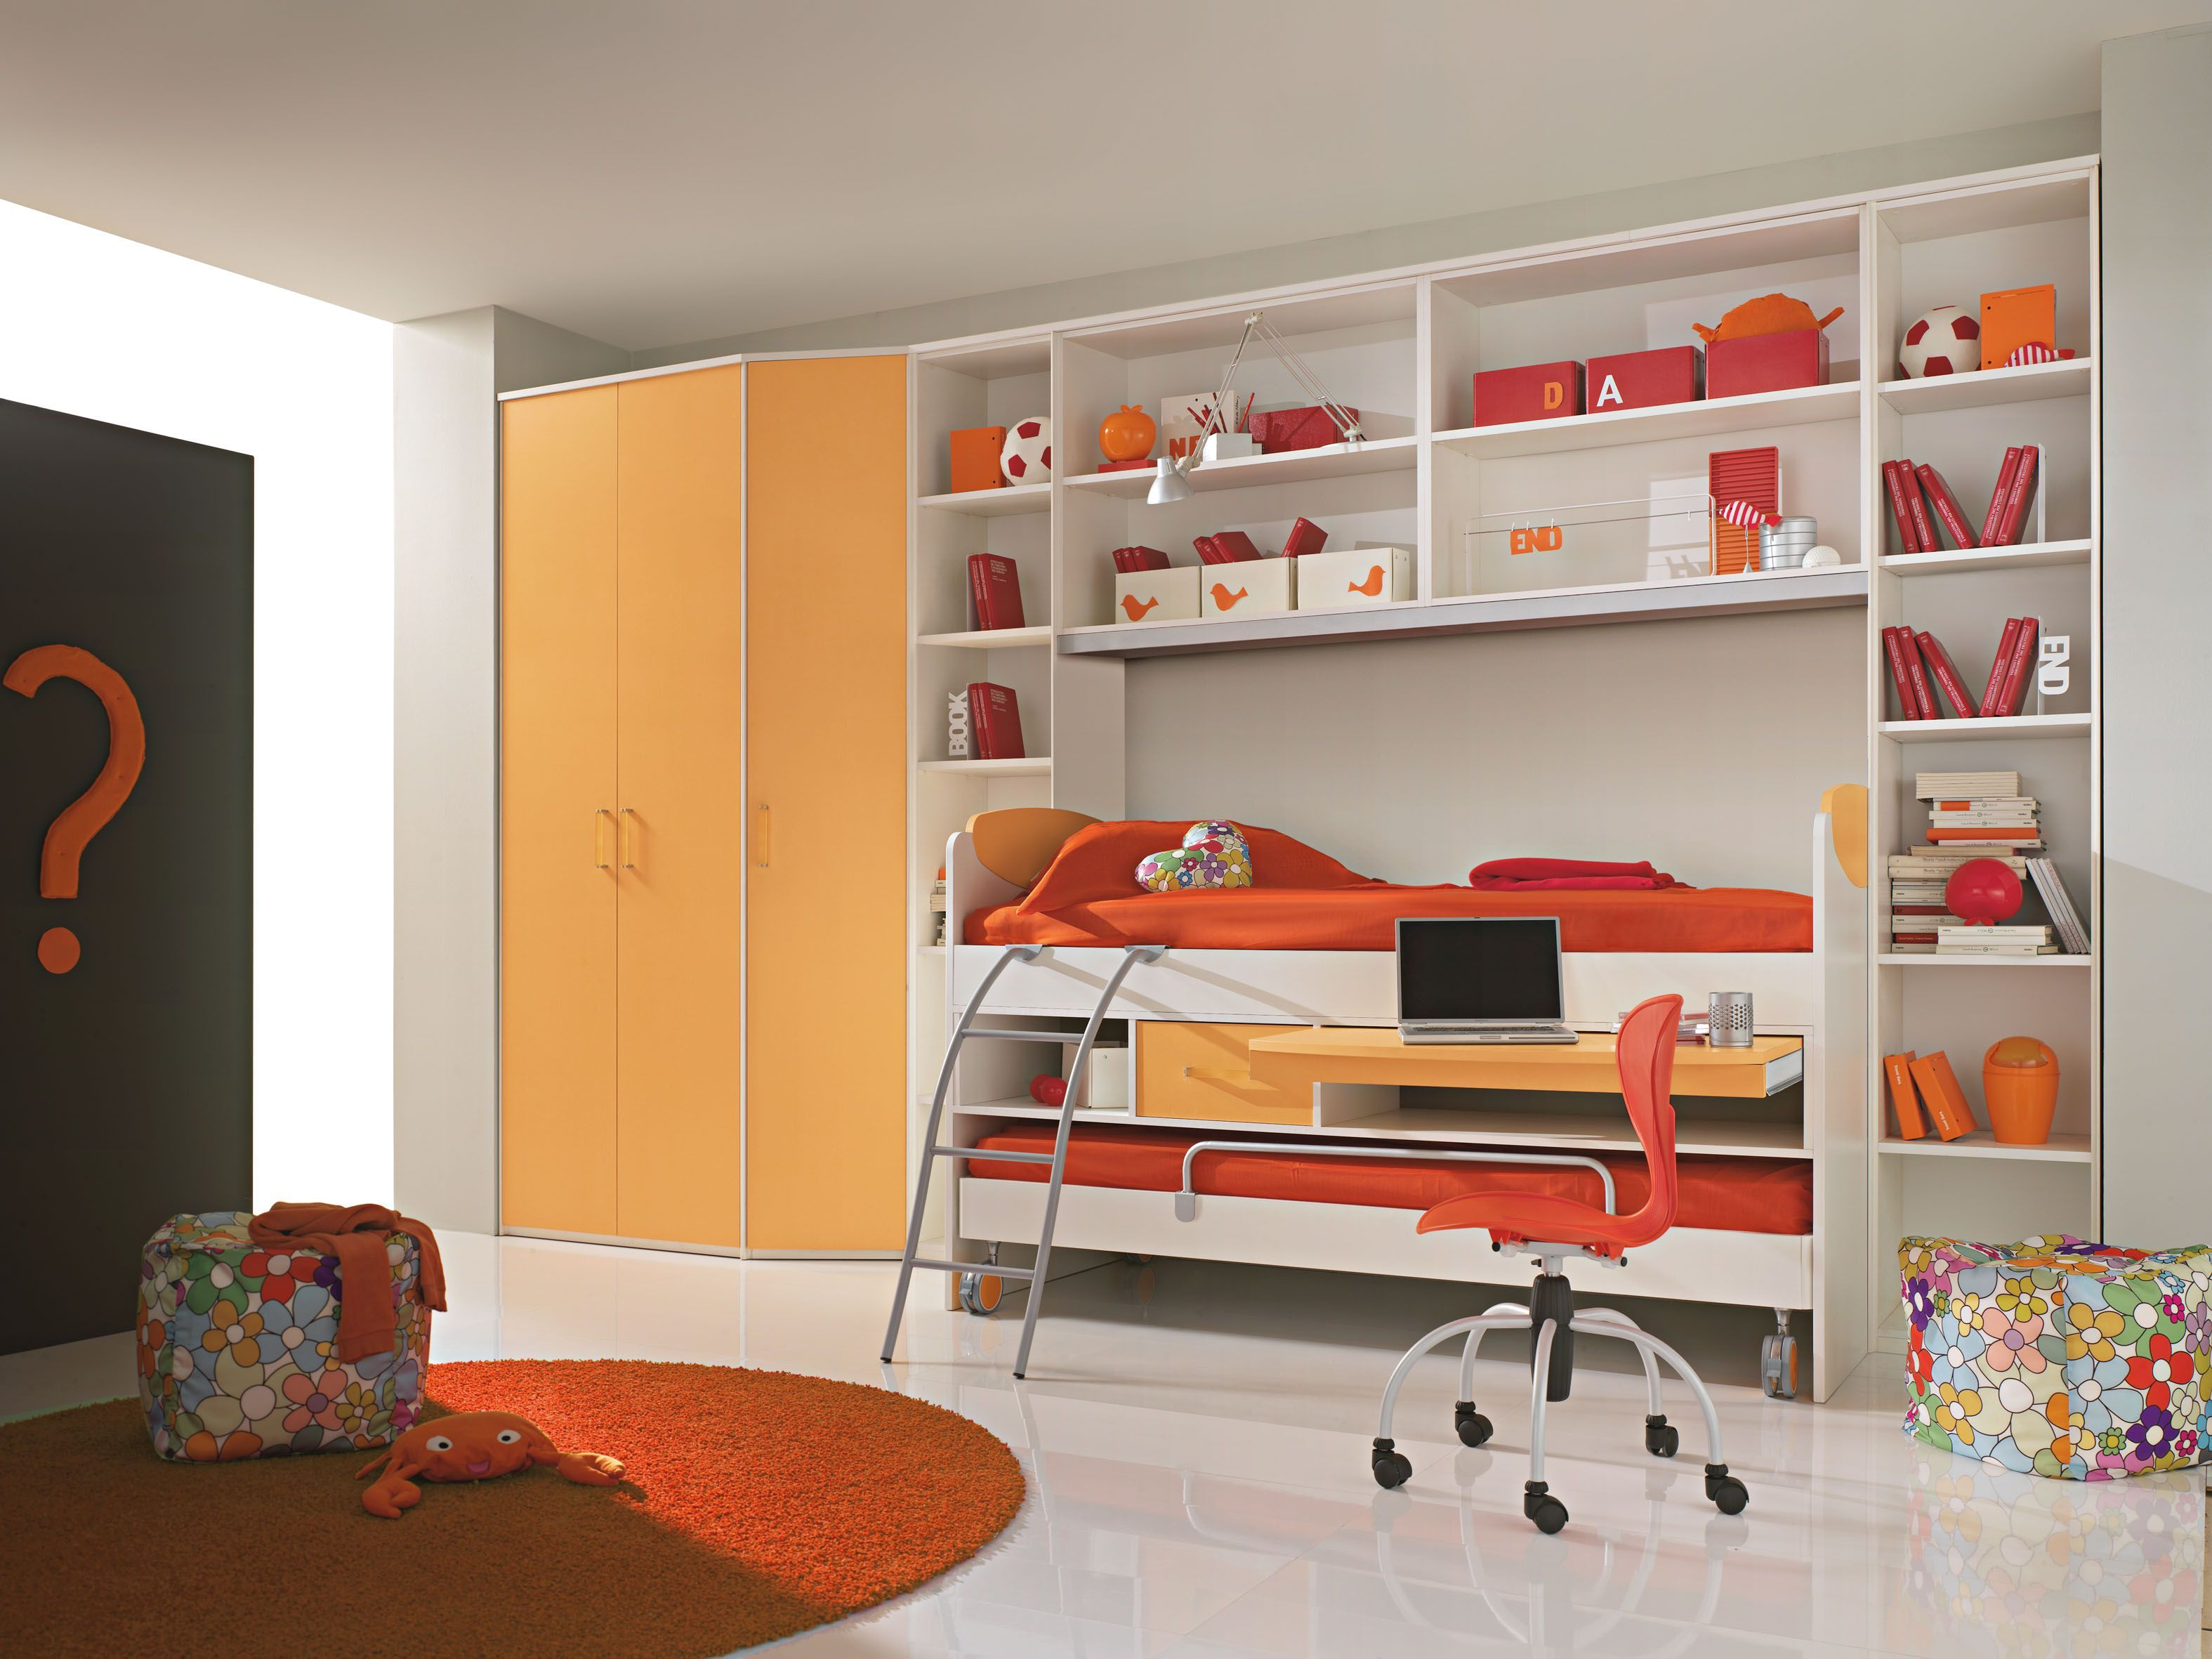 Cool Bunk Beds For Teens Room Designs For Teens Cool Bunk Beds With Slides Bunk Beds For